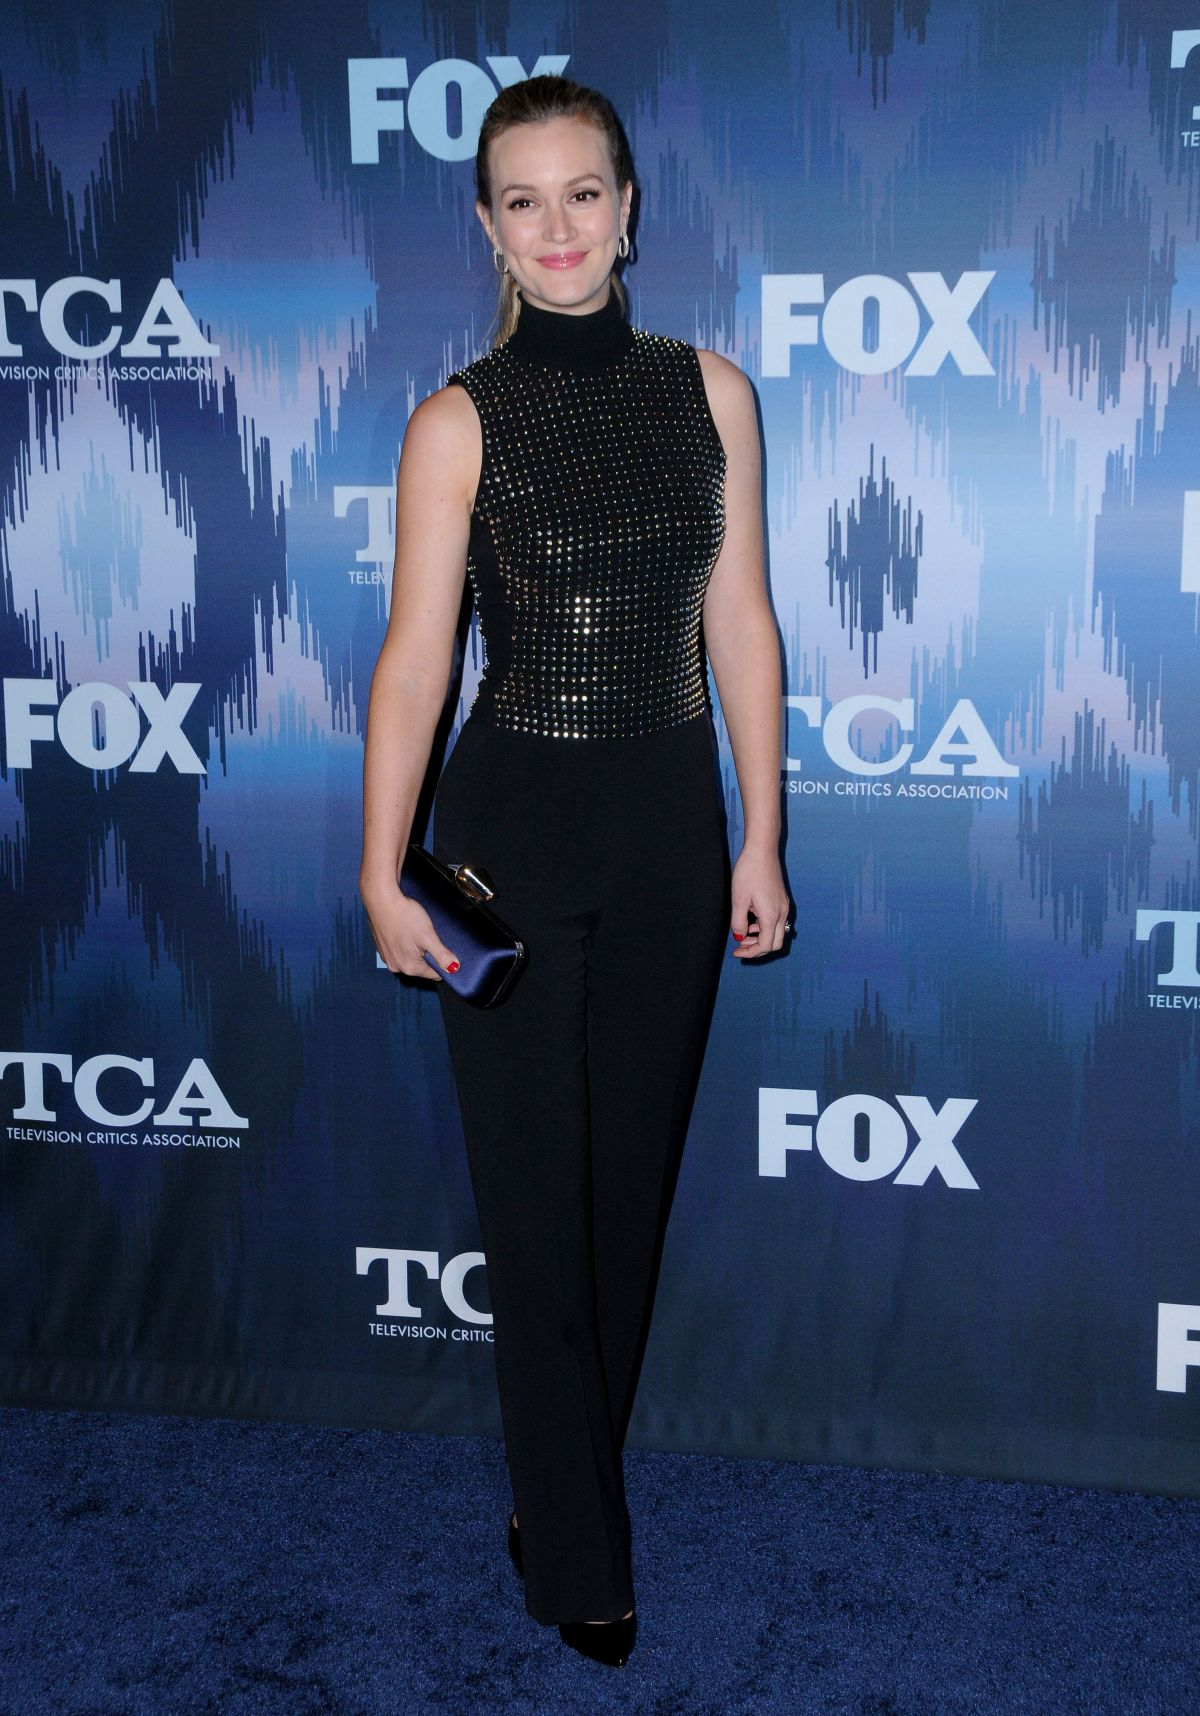 LEIGHTON MEESTER at Fox All-star Party at 2017 Winter TCA ...